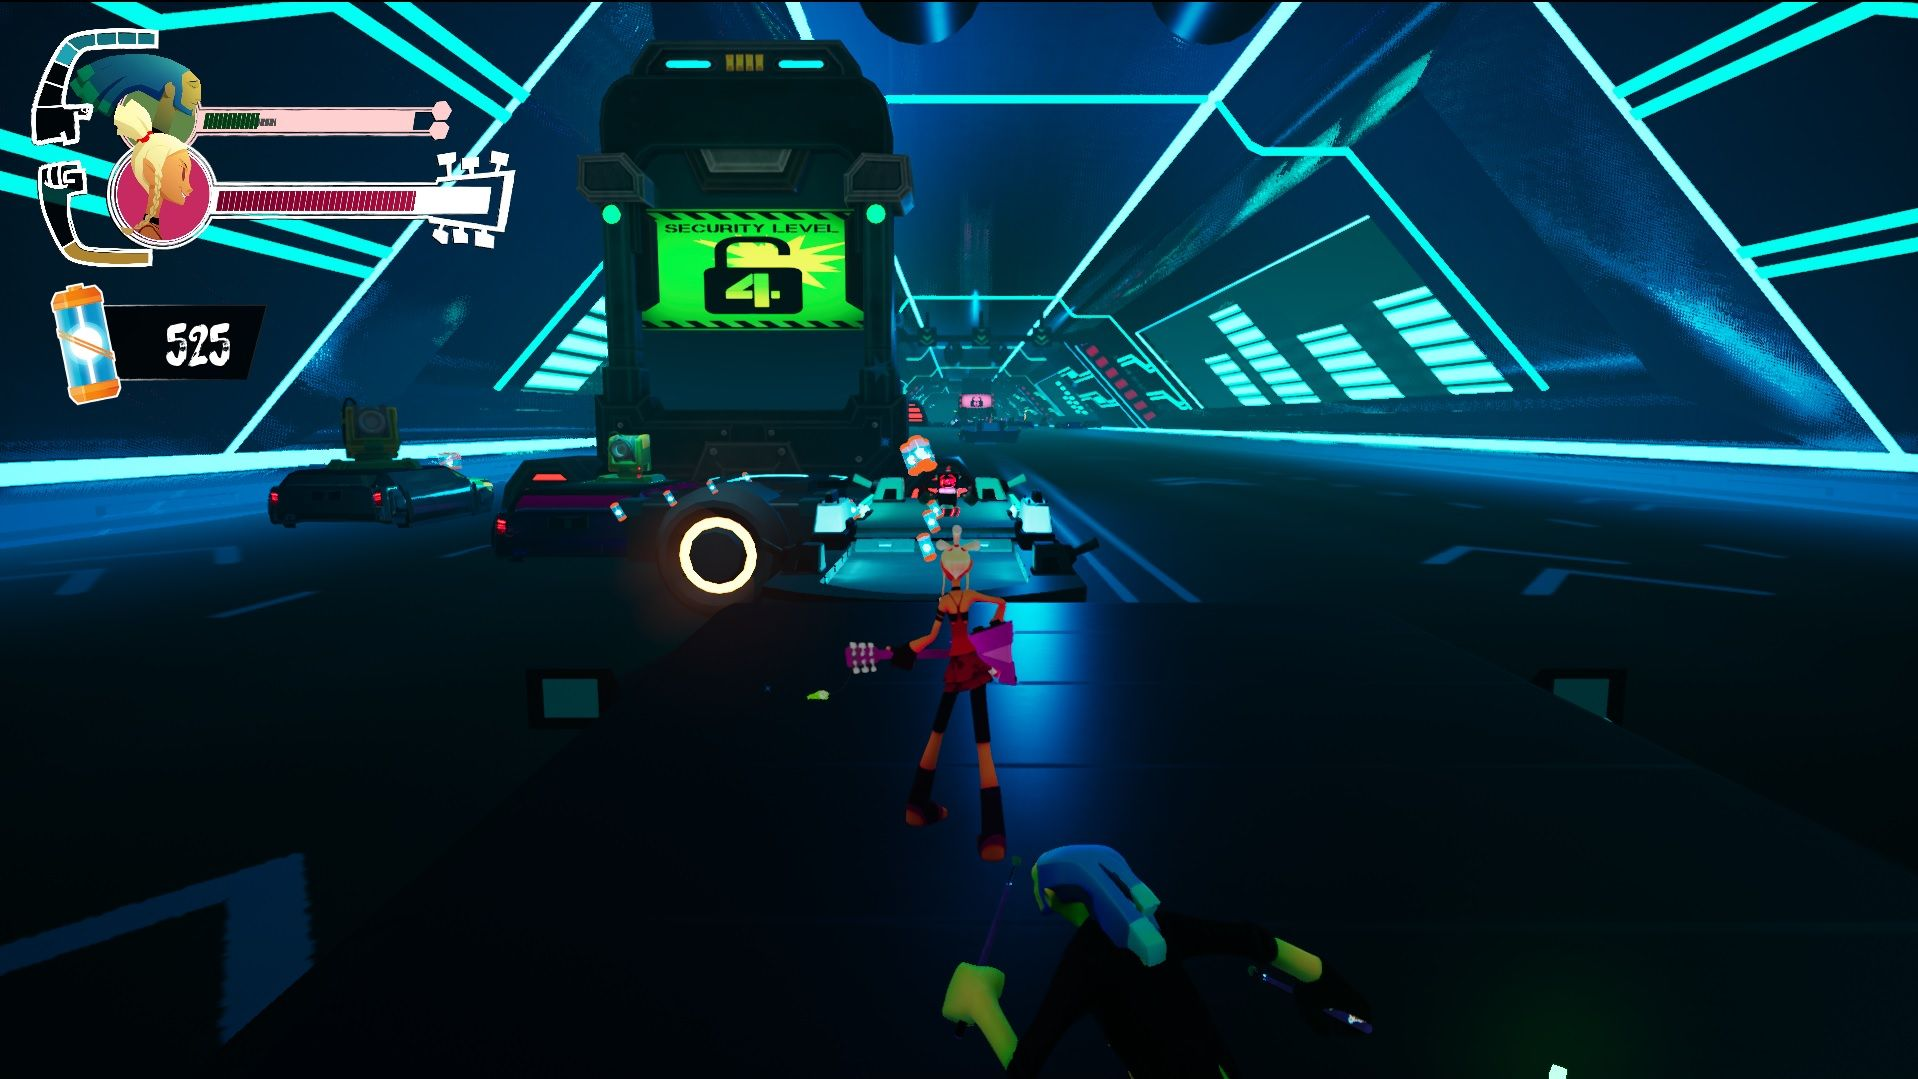 A screenshot of a platforming section from later in No Straight Roads. The player, as Mayday, is standing on a platform styled as a black limousine, in what looks like an underground tunnel full of other limos.